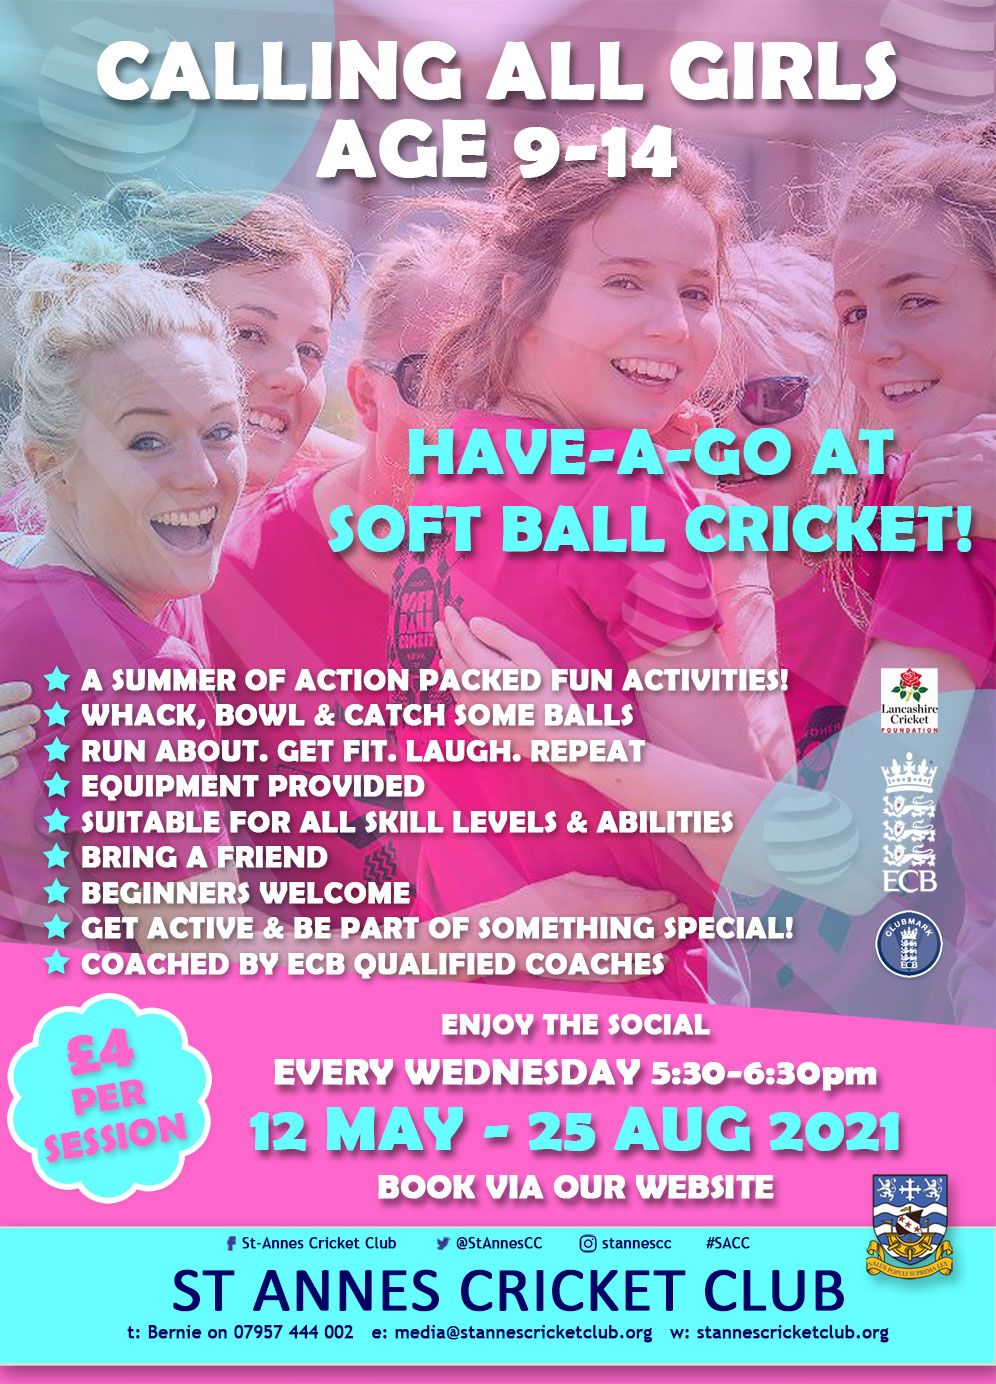 Fantastic Soft Ball Cricket fun for girls age 9-14 at St Annes CC!